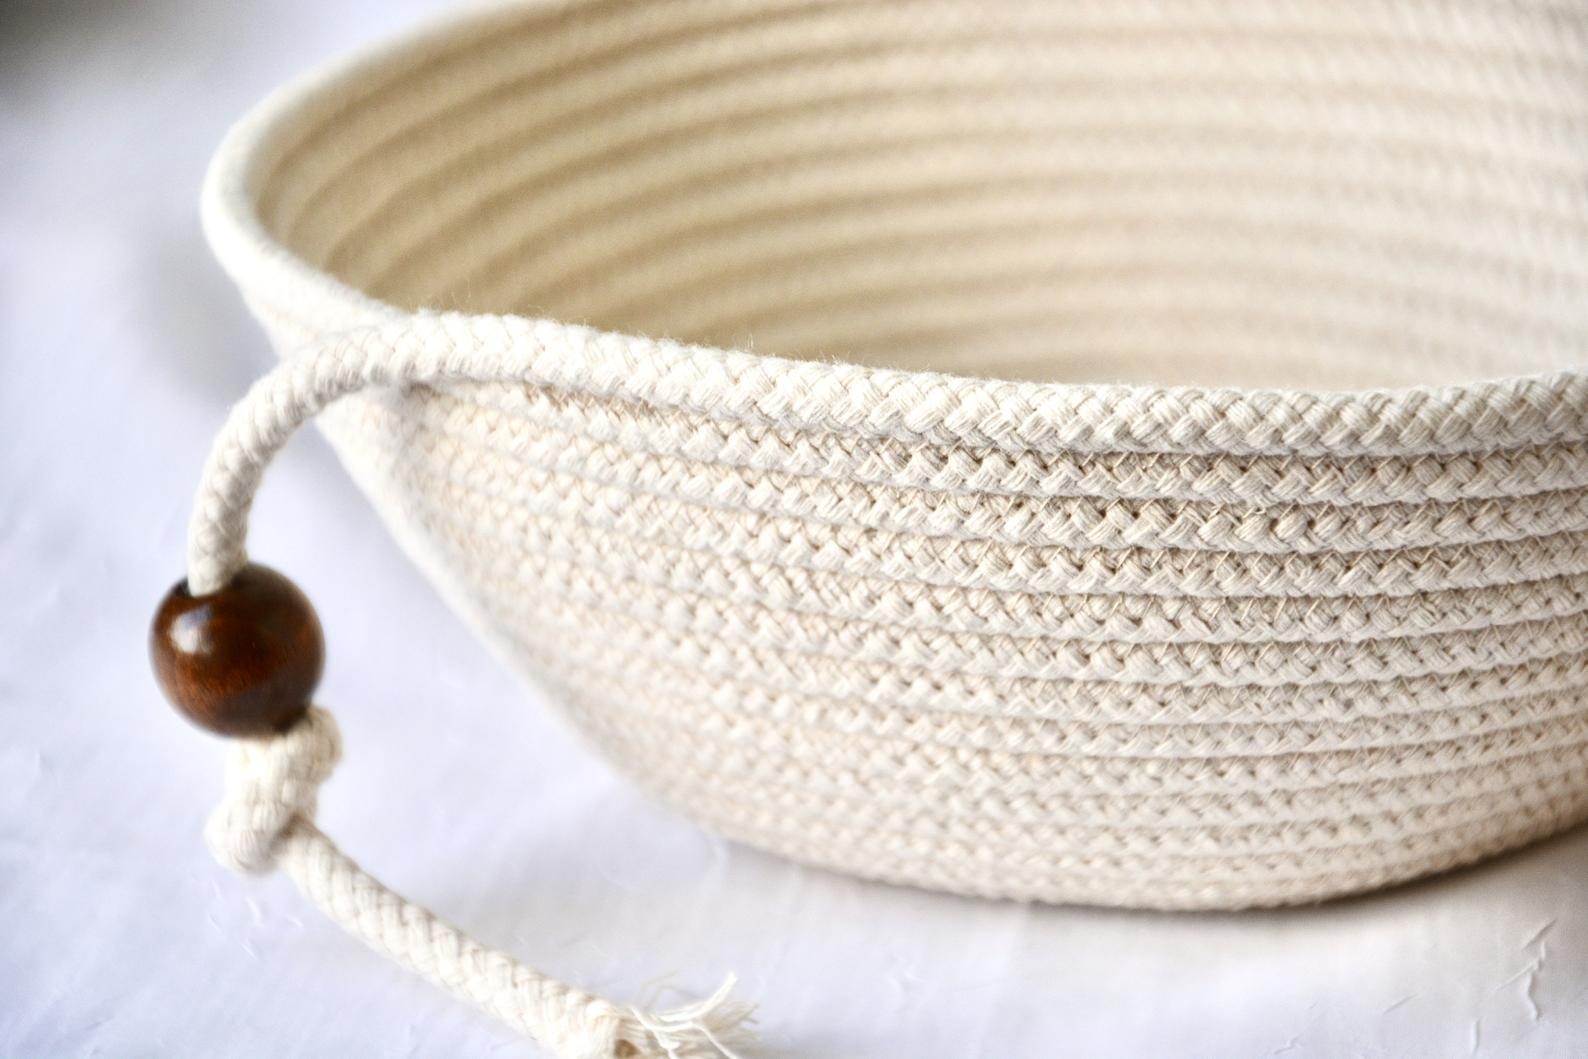 Woven basket for bread proofing